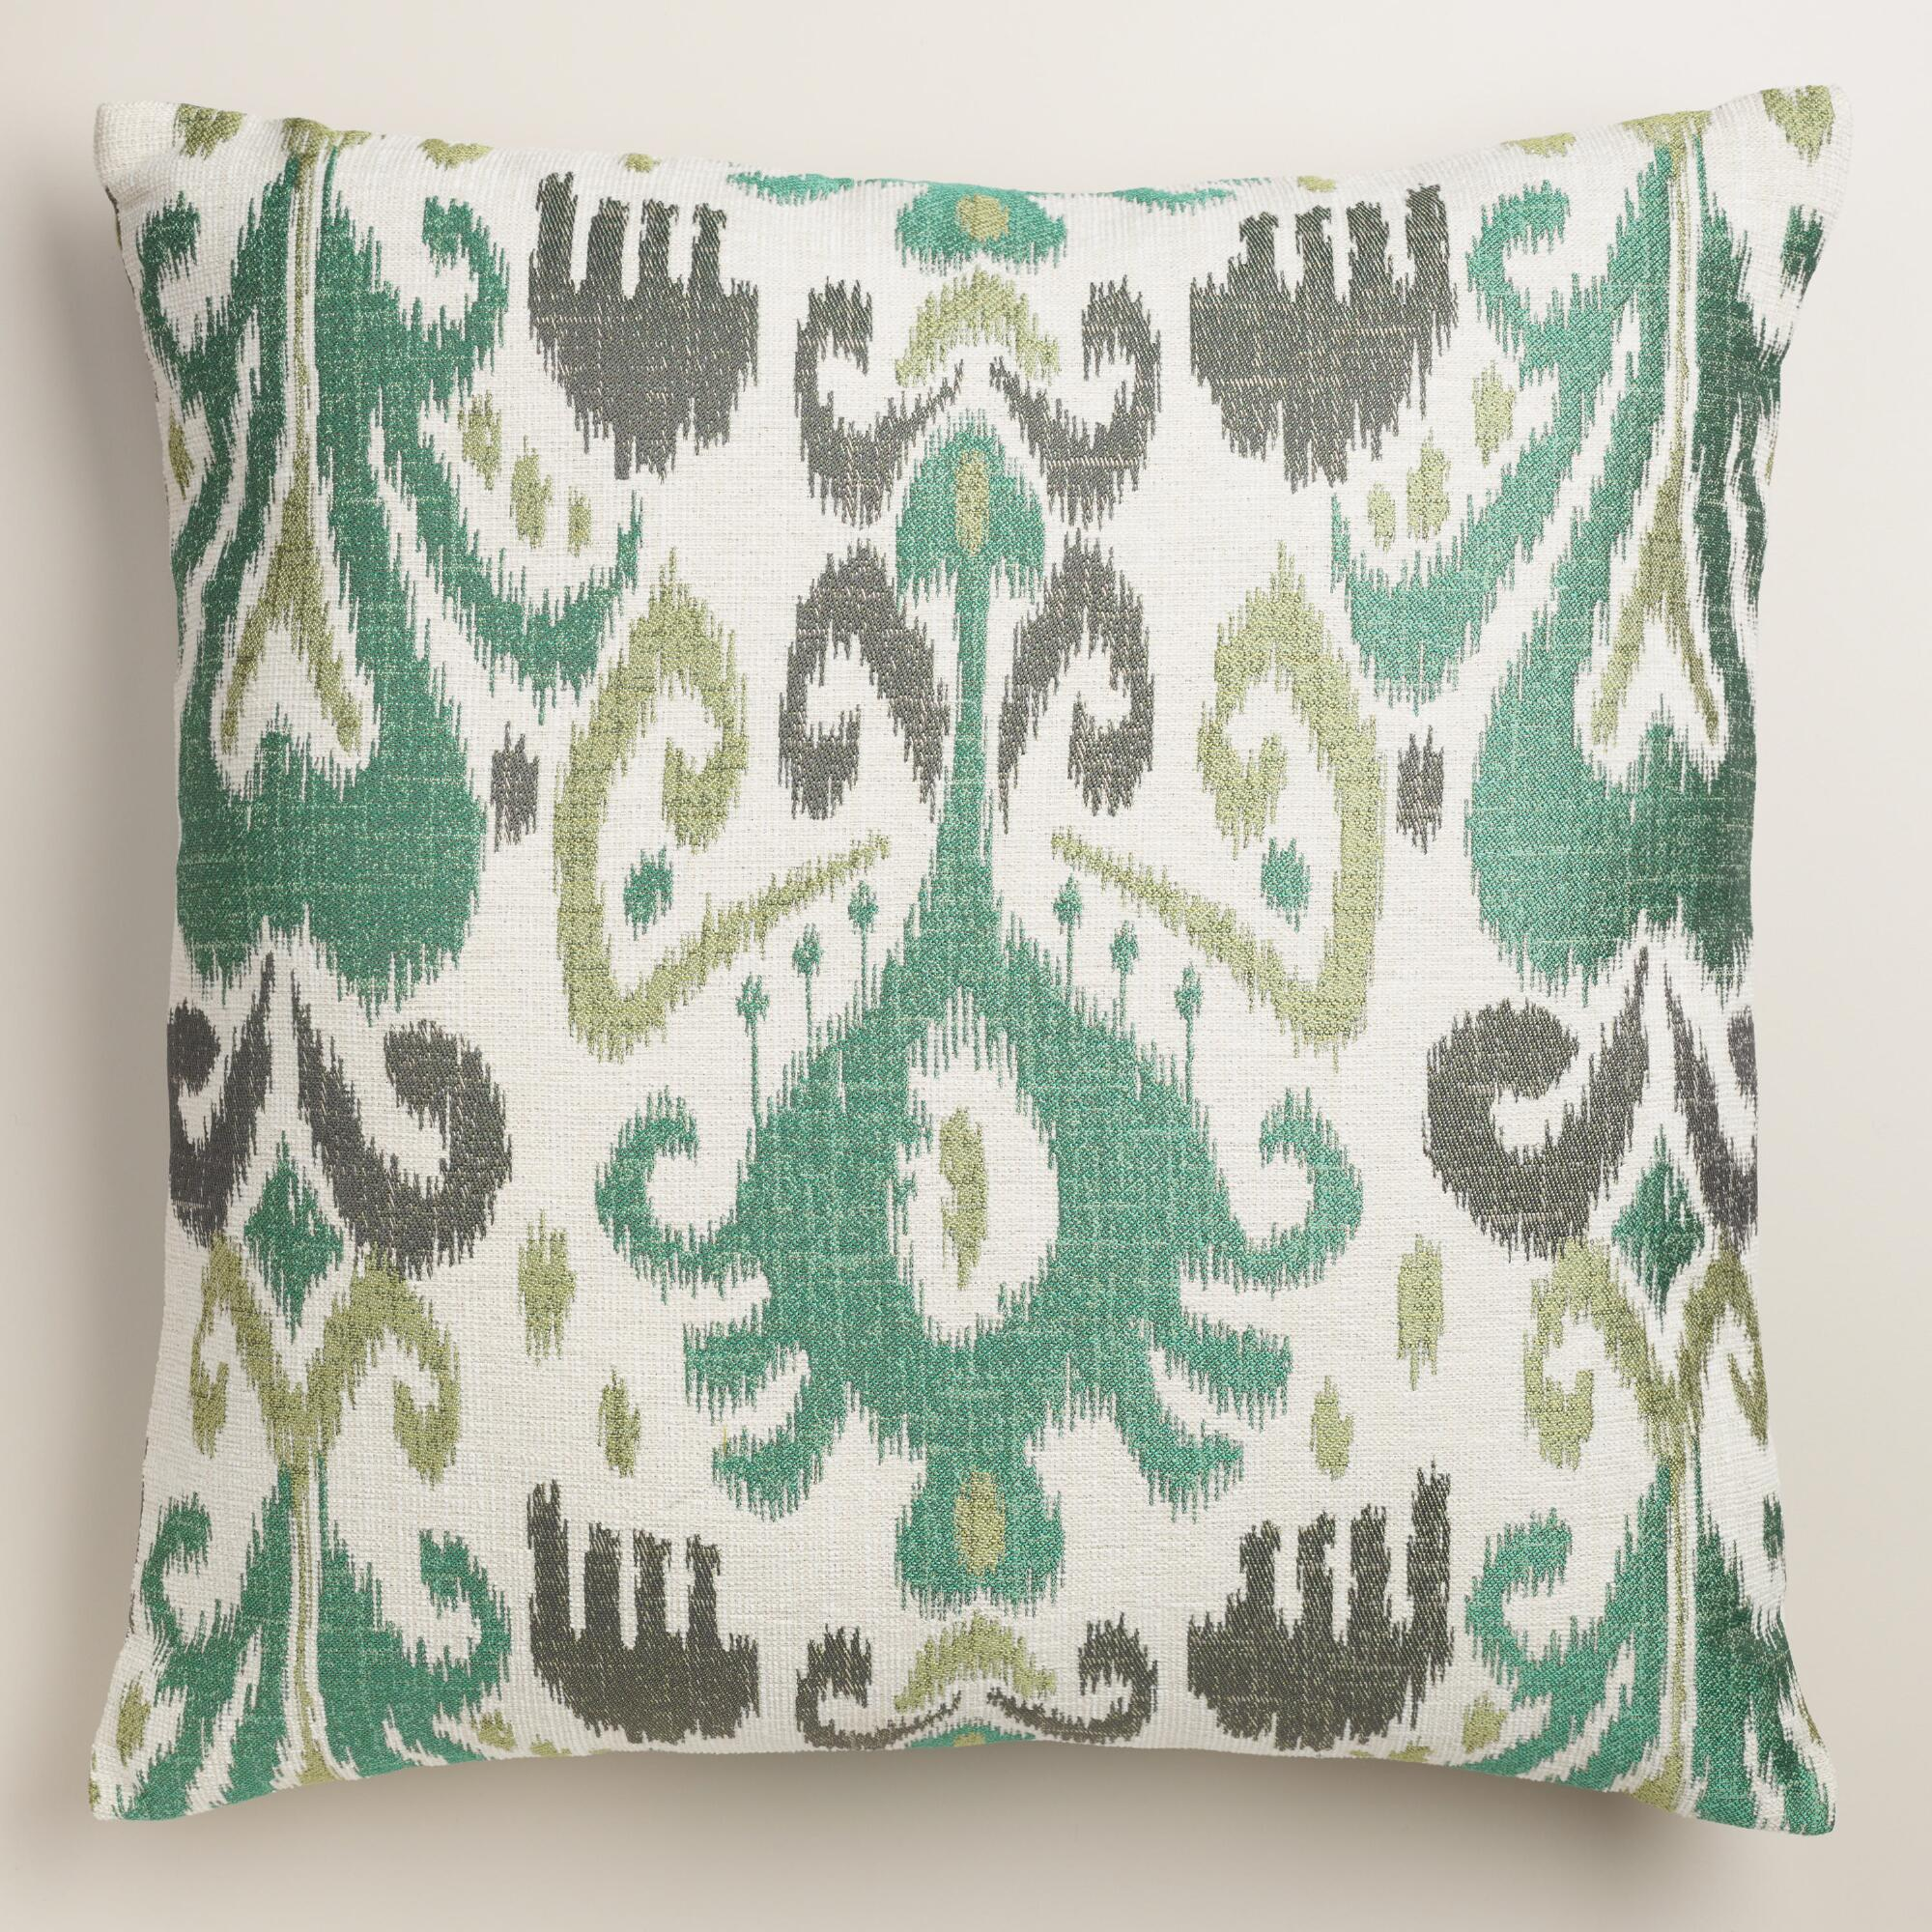 Jacquard Throw Pillows : Cool Ikat Jacquard Throw Pillow World Market